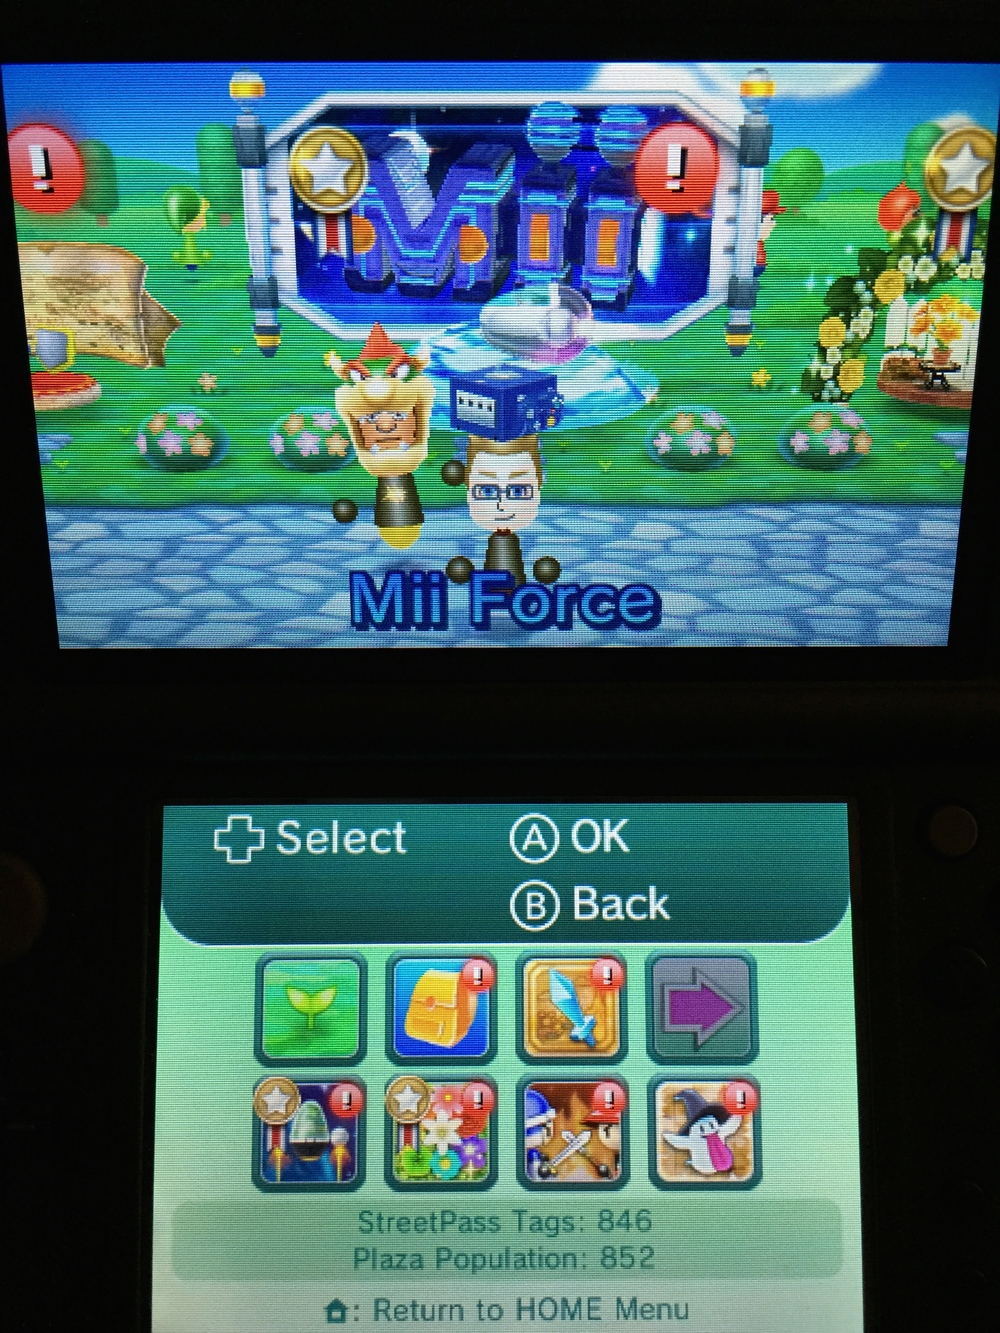 streetpass_mii_plaza_mii_force.jpg